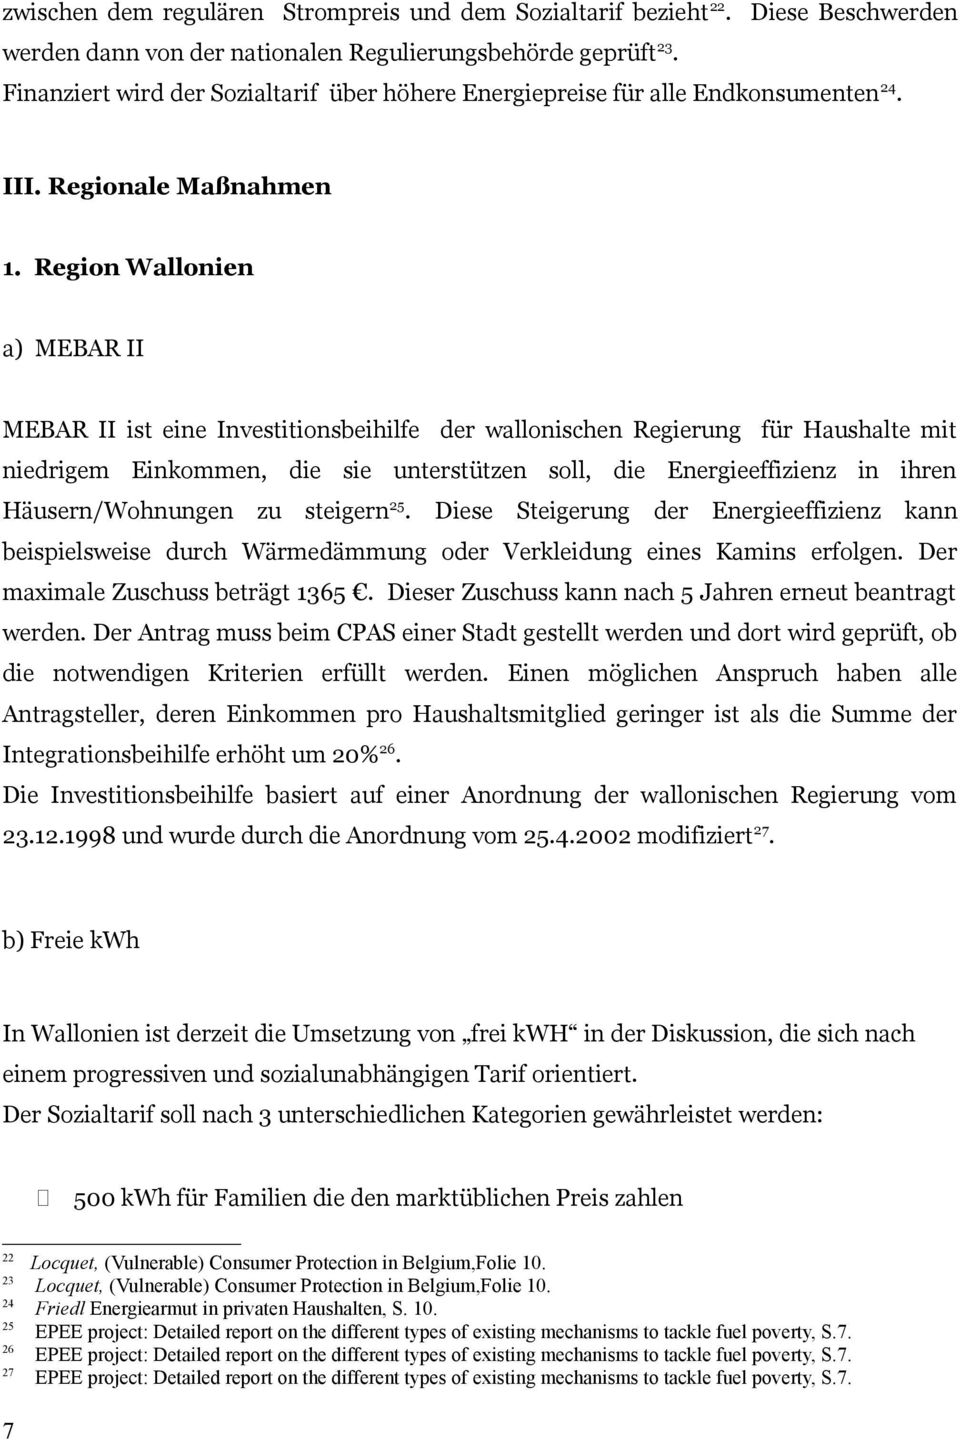 Großartig Client Informationsvorlage Ideen - Entry Level Resume ...